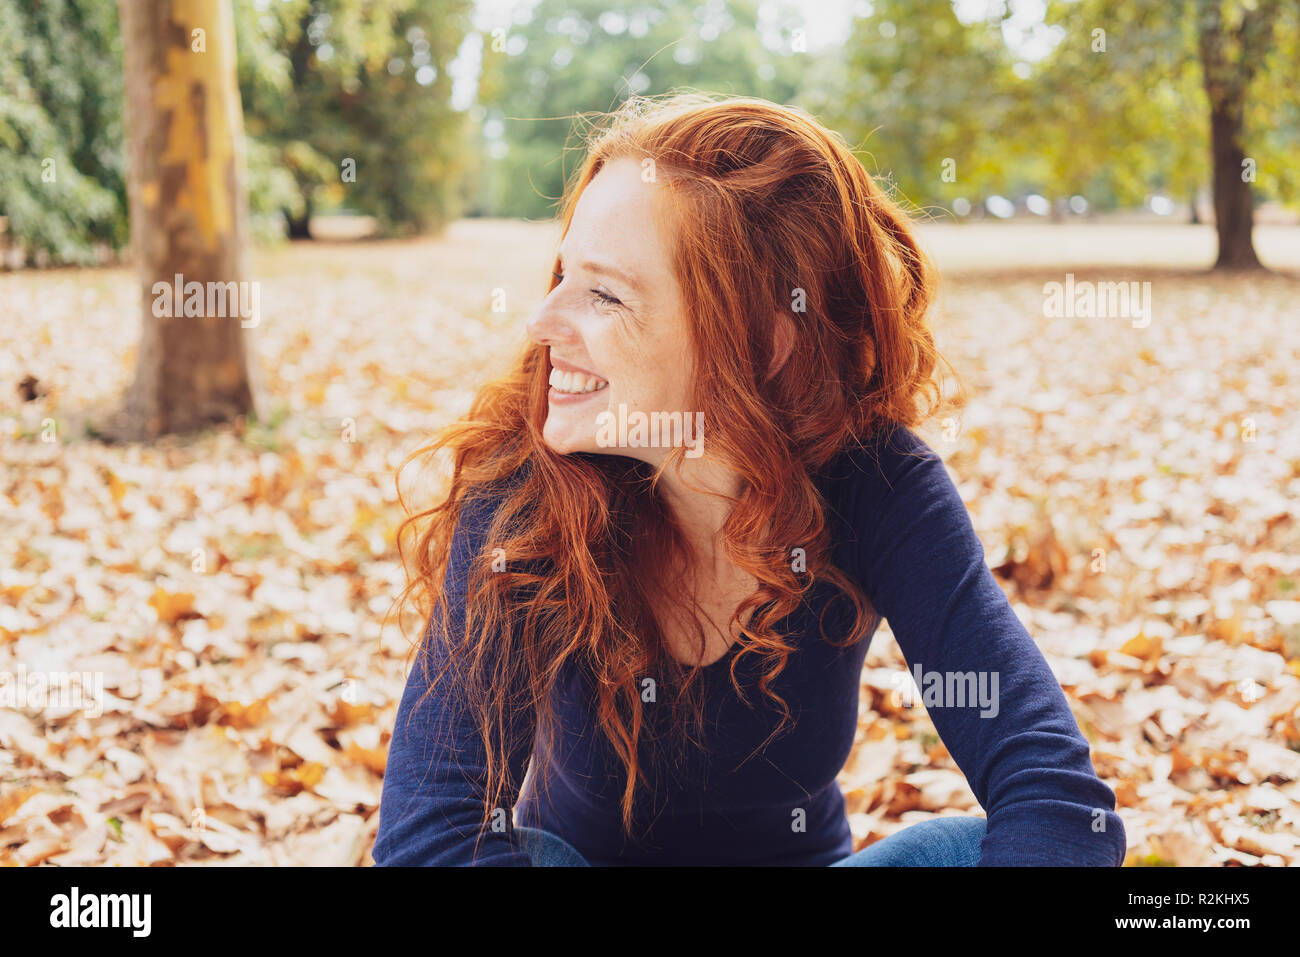 Cute happy young woman with tousled red hair relaxing in a park in autumn sitting amongst the fallen leaves looking to the side with a beaming smile - Stock Image